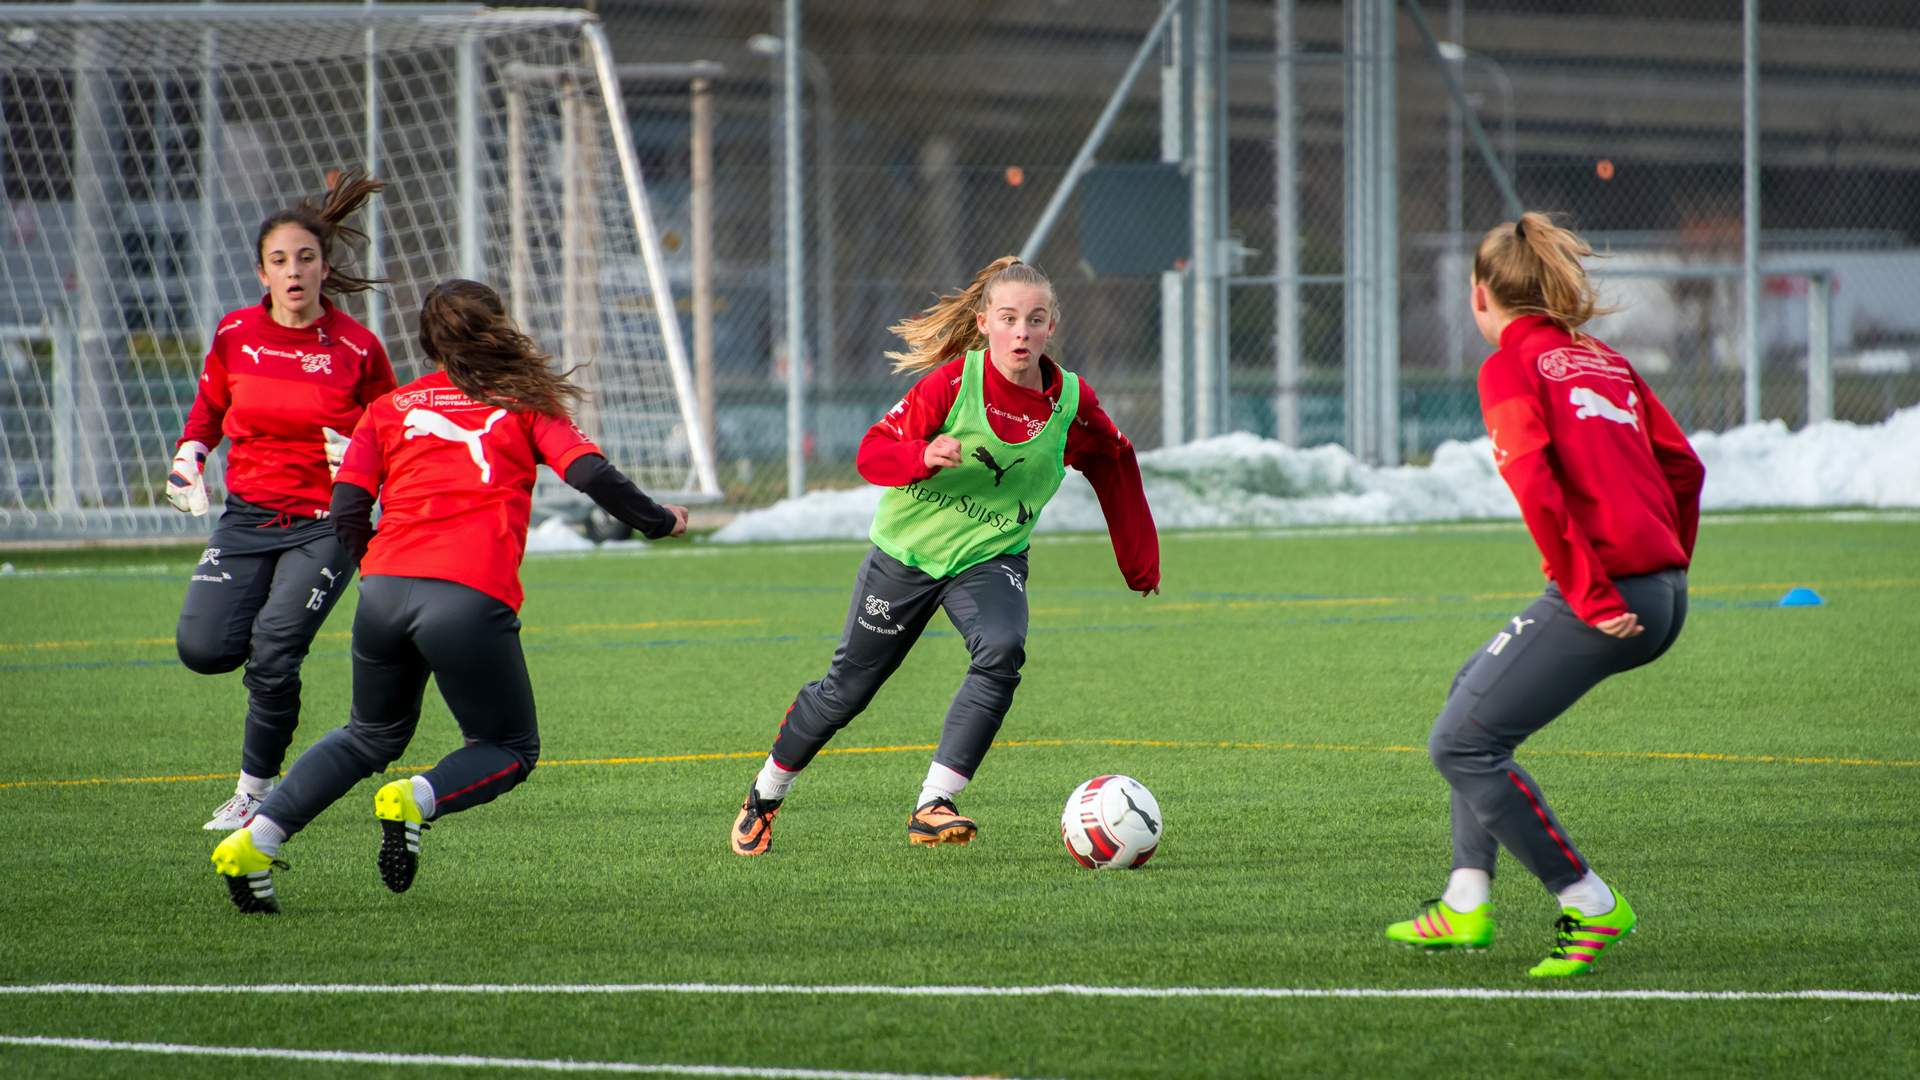 Women's football; women's national team; football; Rahel Tschopp; Credit Suisse Academy